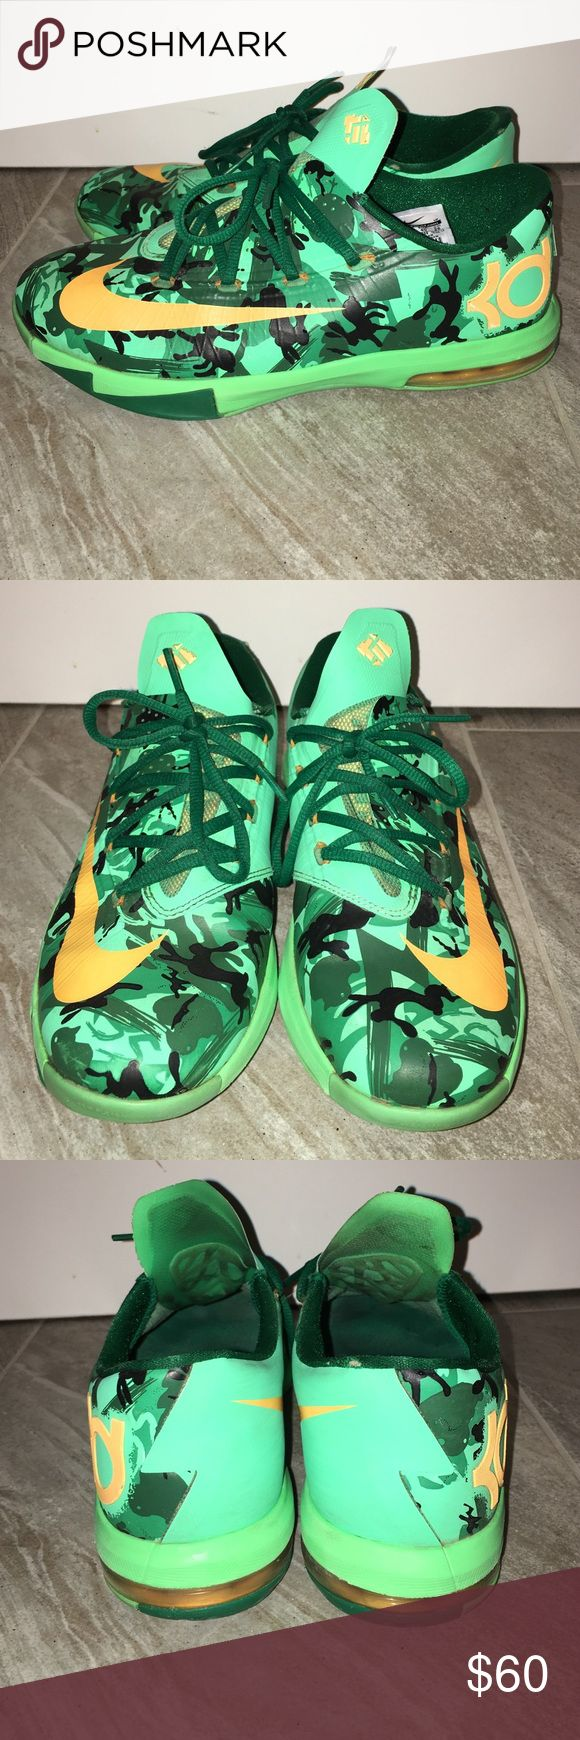 Kevin Durant Nike shoes Kevin Durant Nike shoes y7 great condition!! Nike KD Shoes Sneakers